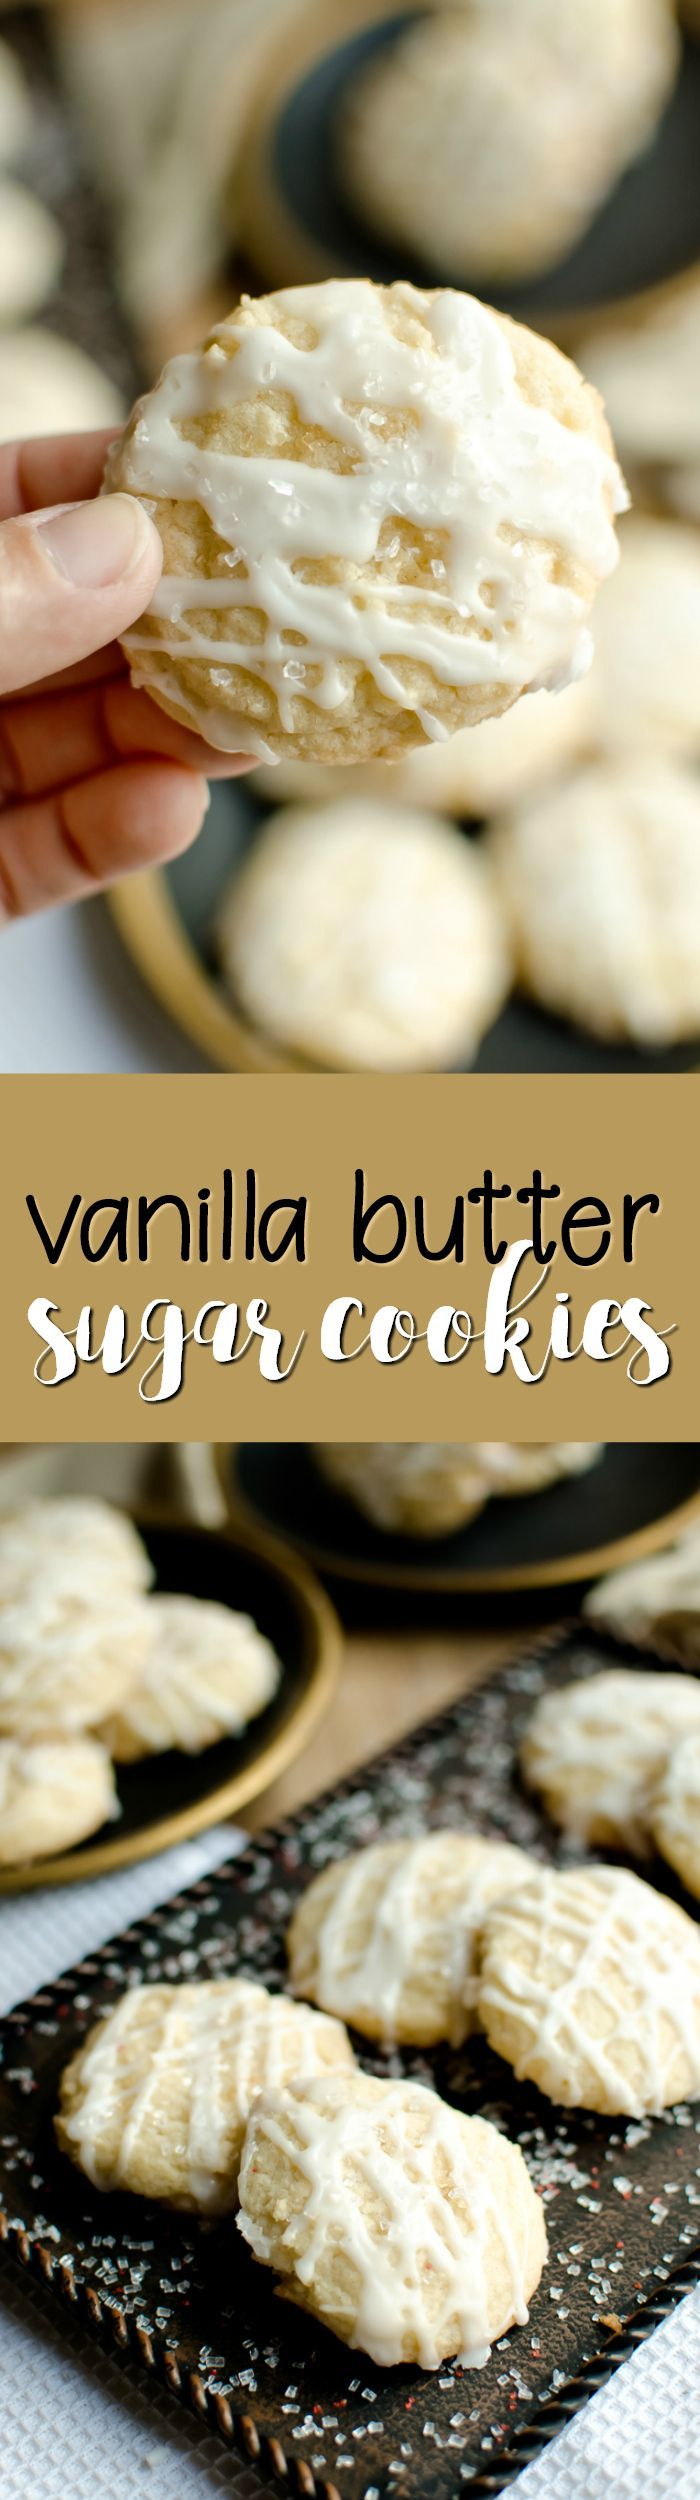 These soft and chewy Vanilla Butter Sugar Cookies are perfect for the holidays!